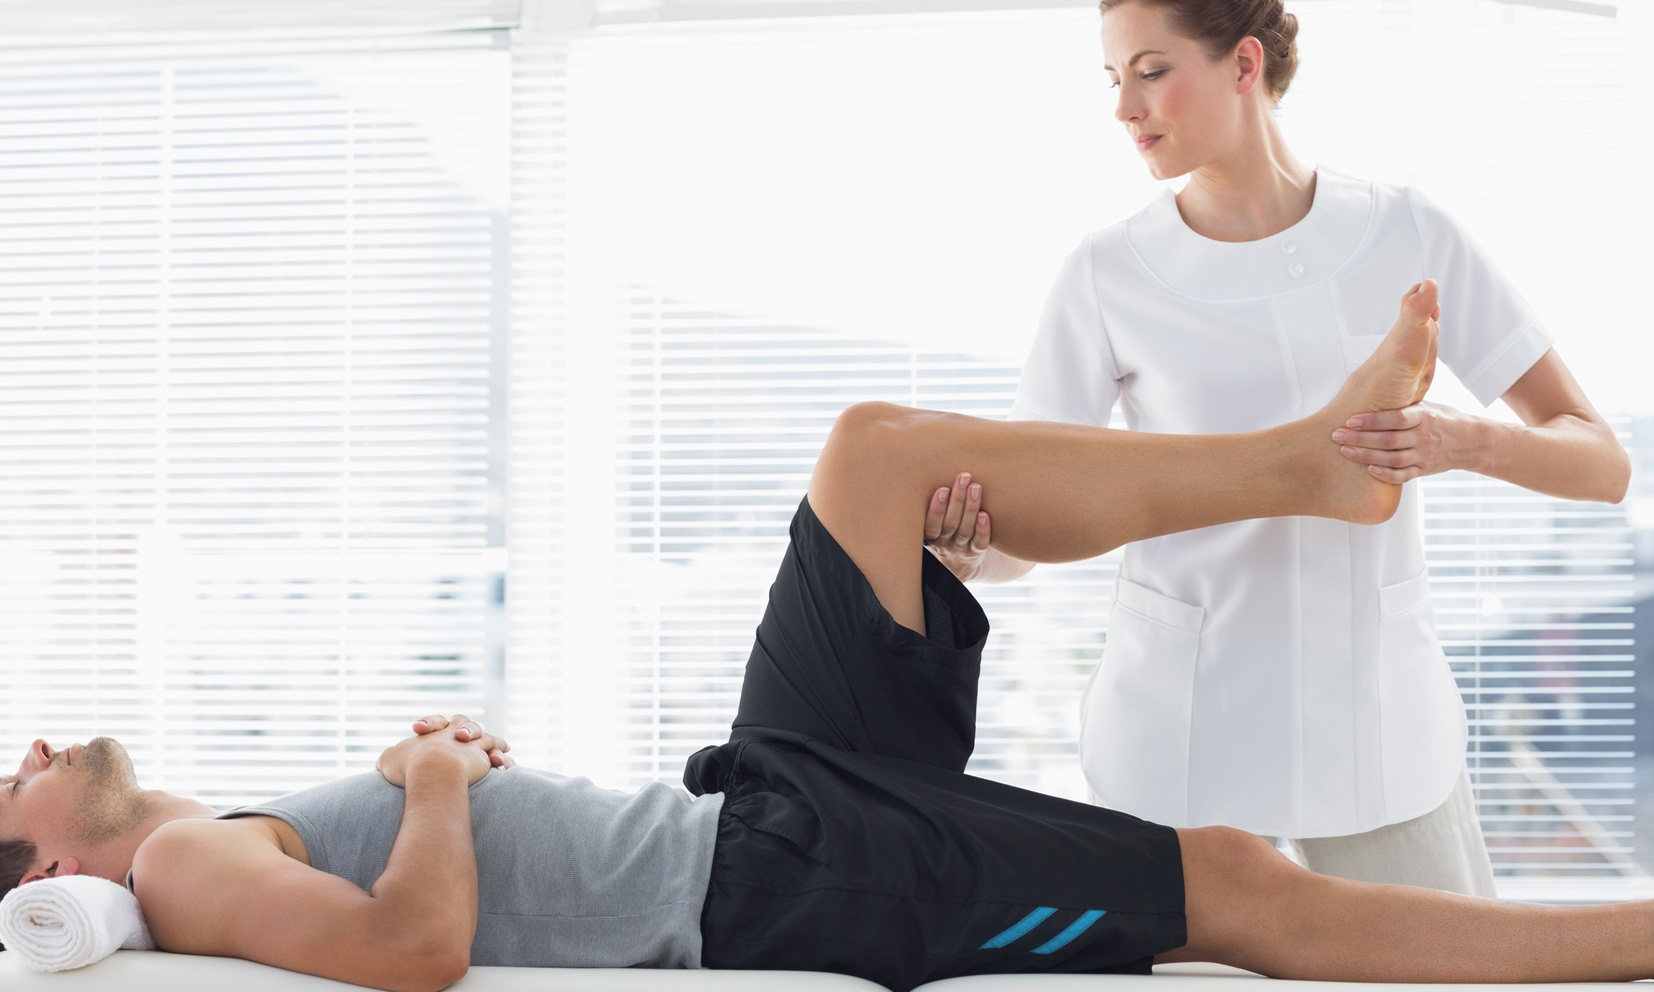 Physical Therapist Job Satisfaction Levels